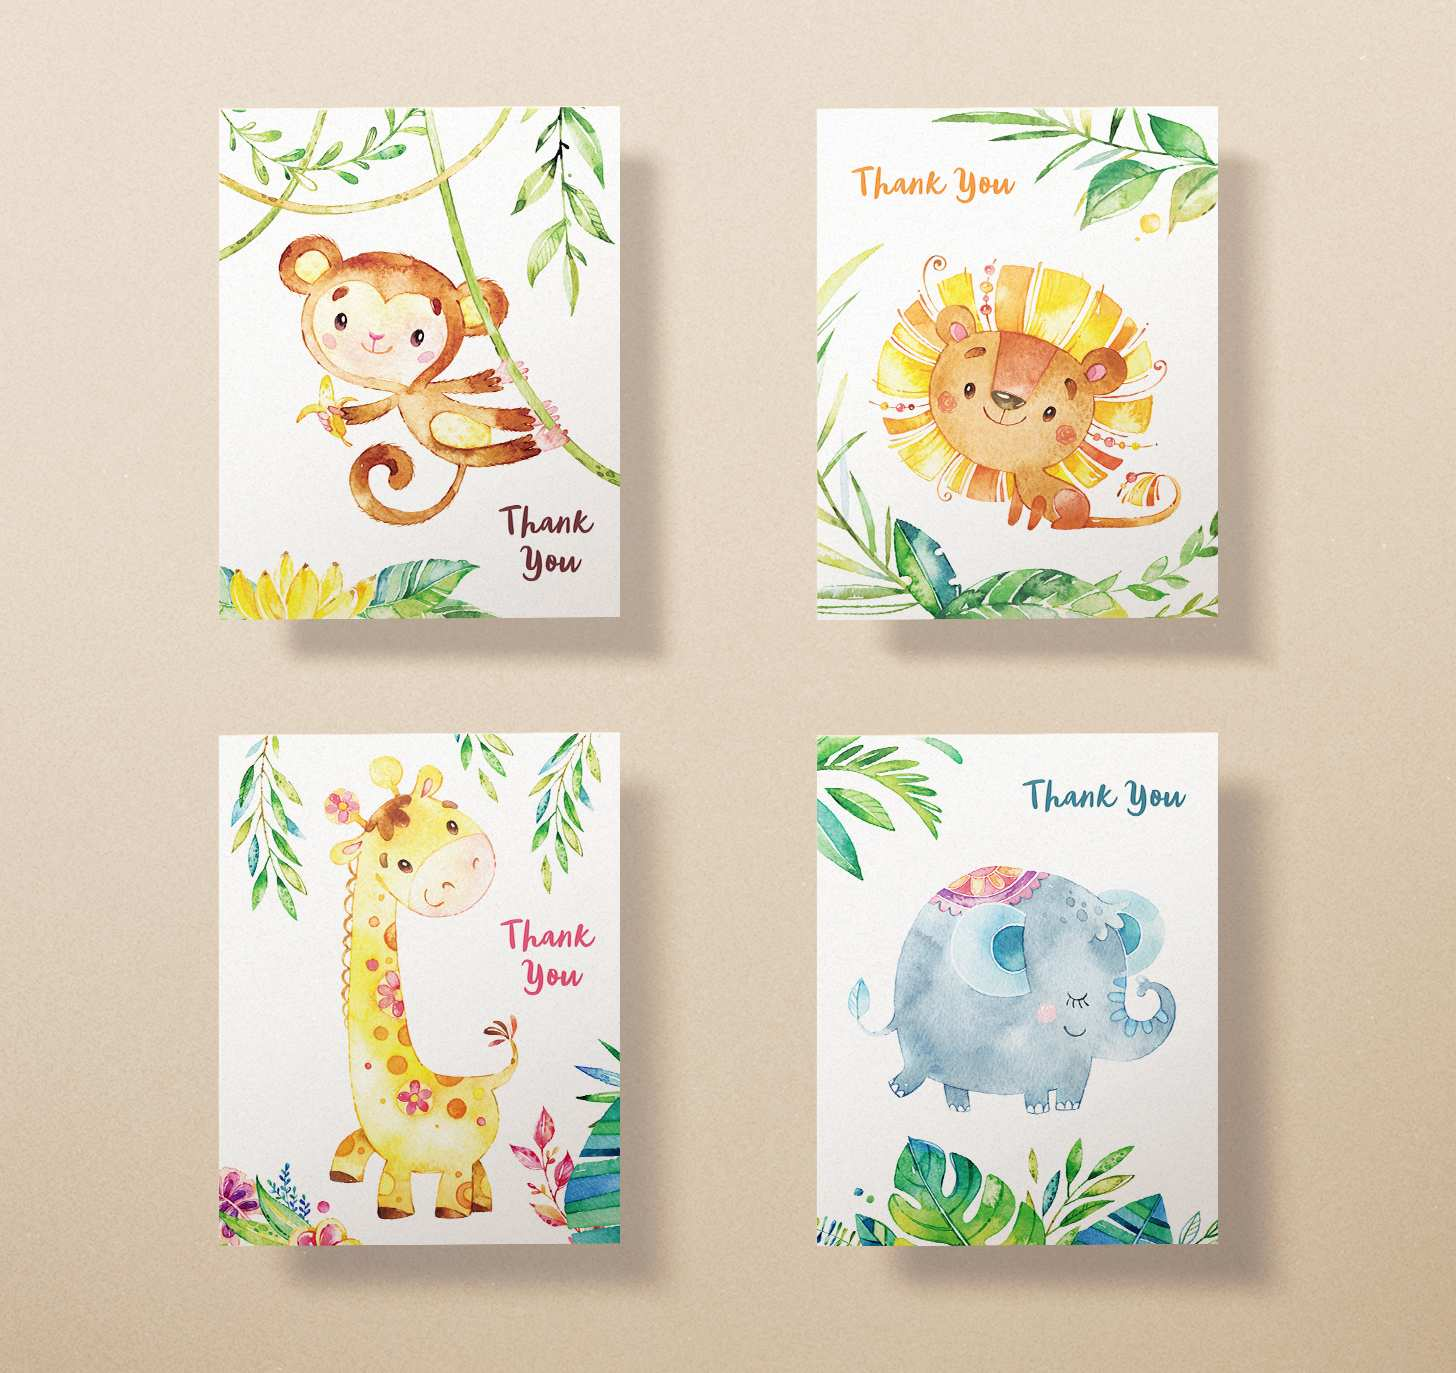 Four cards with cute lion, monkey, giraffe, and elephant designs on brown background